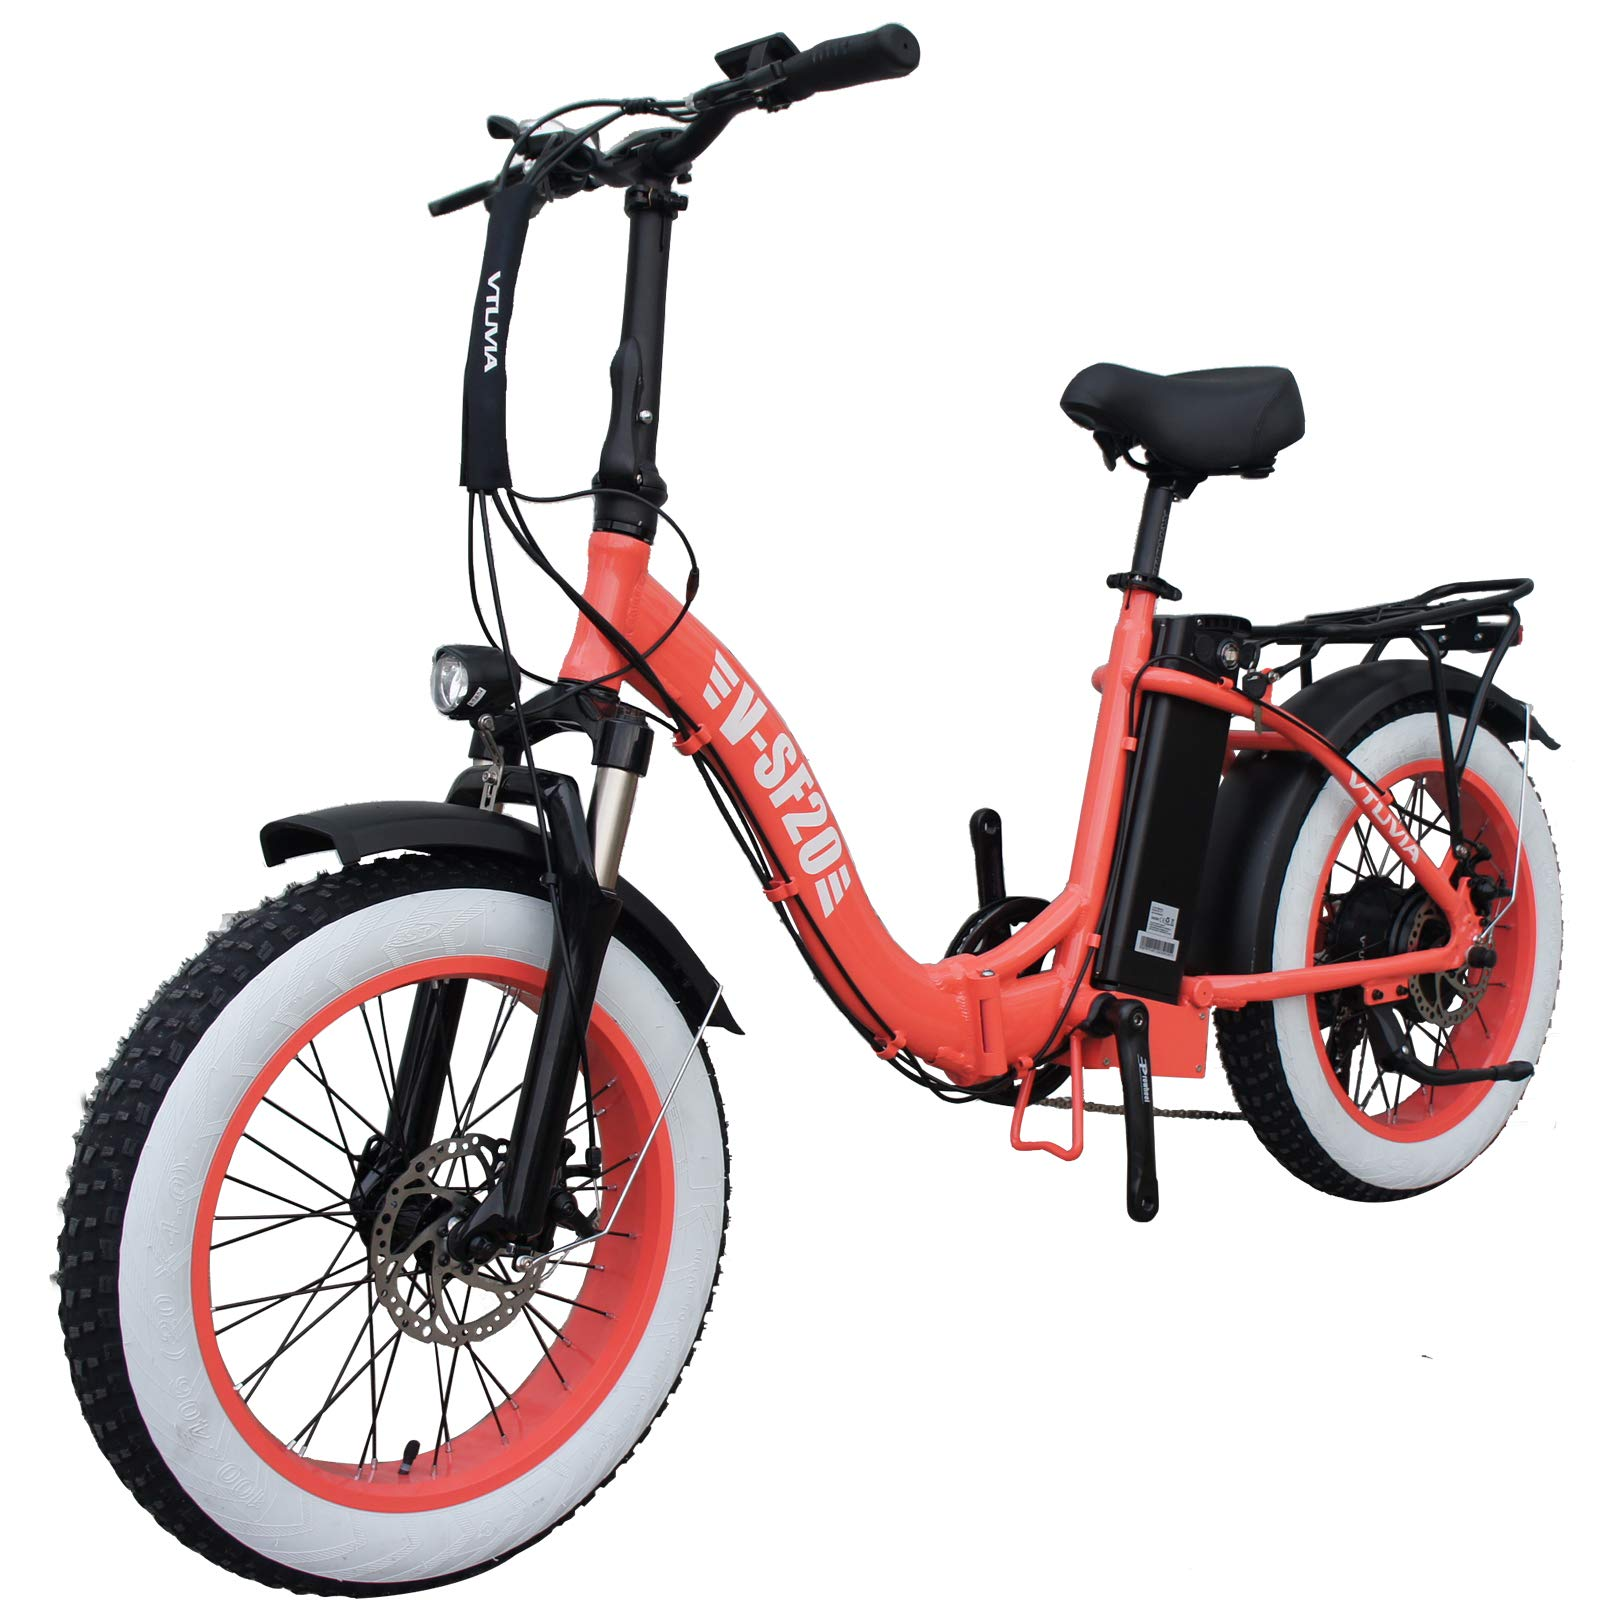 vtuvia 20 Inch Fat Tire Folding Electric Bike Beach Snow Mountain 750W Motor 48V 13AH Removable Lithium-Ion Battery Electric Bicycle